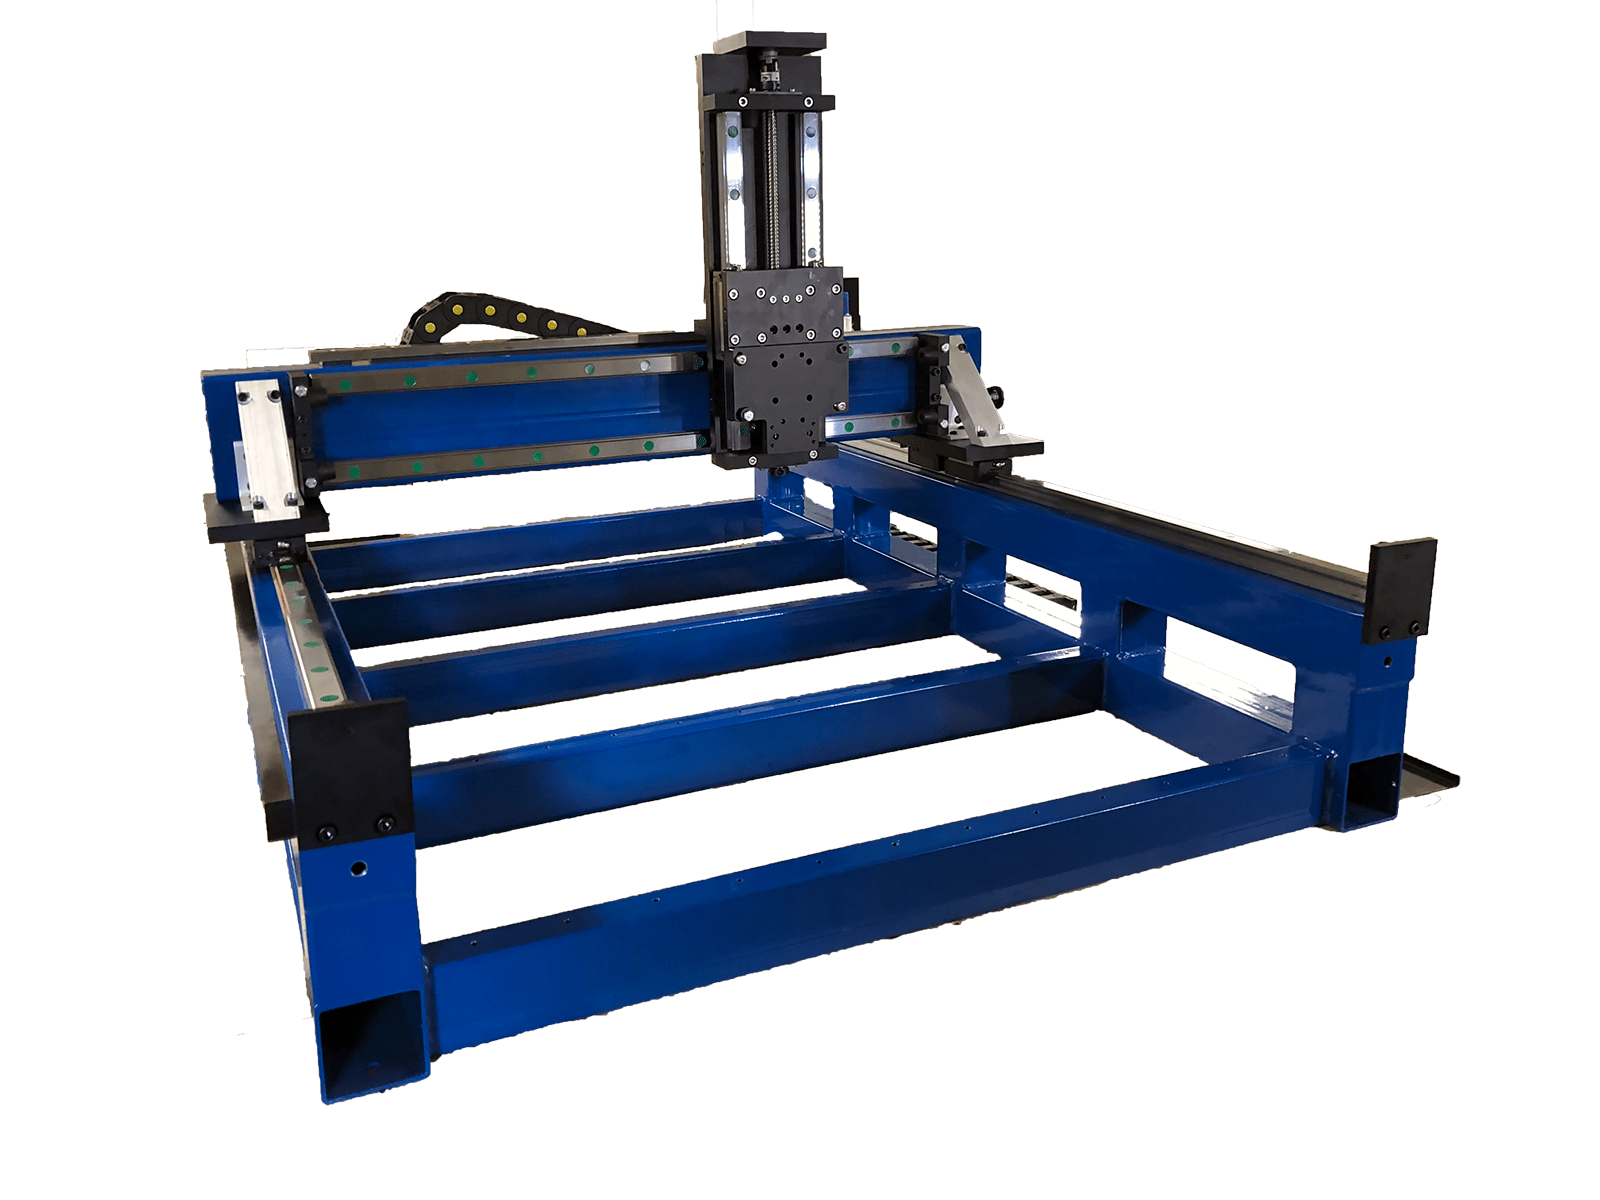 Saturn Series 2' x 4' CNC Router